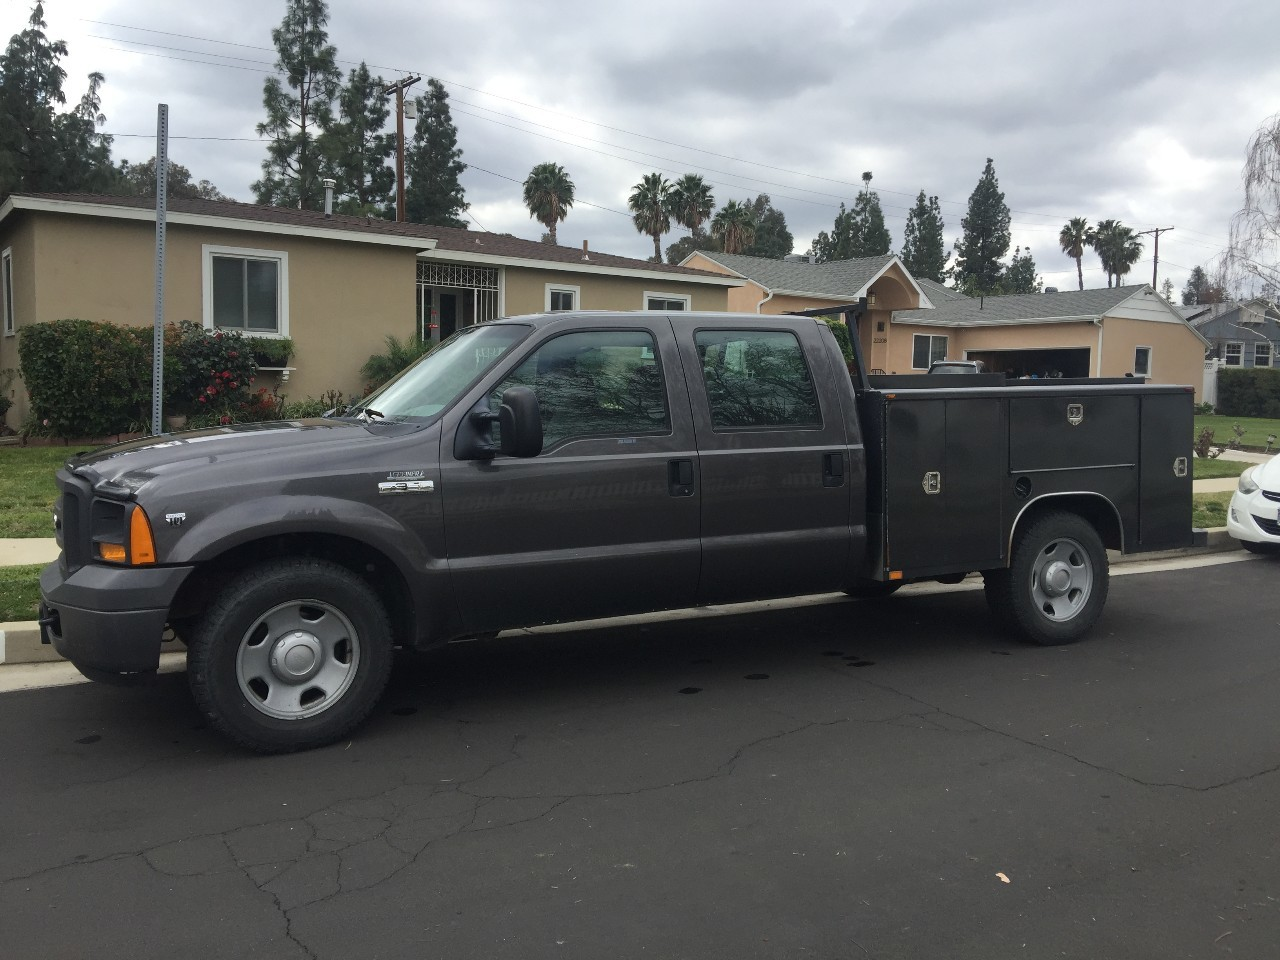 F350 Utility Truck Service Trucks For Sale 1995 Ford F 350 7 3 Fuel Filter Location